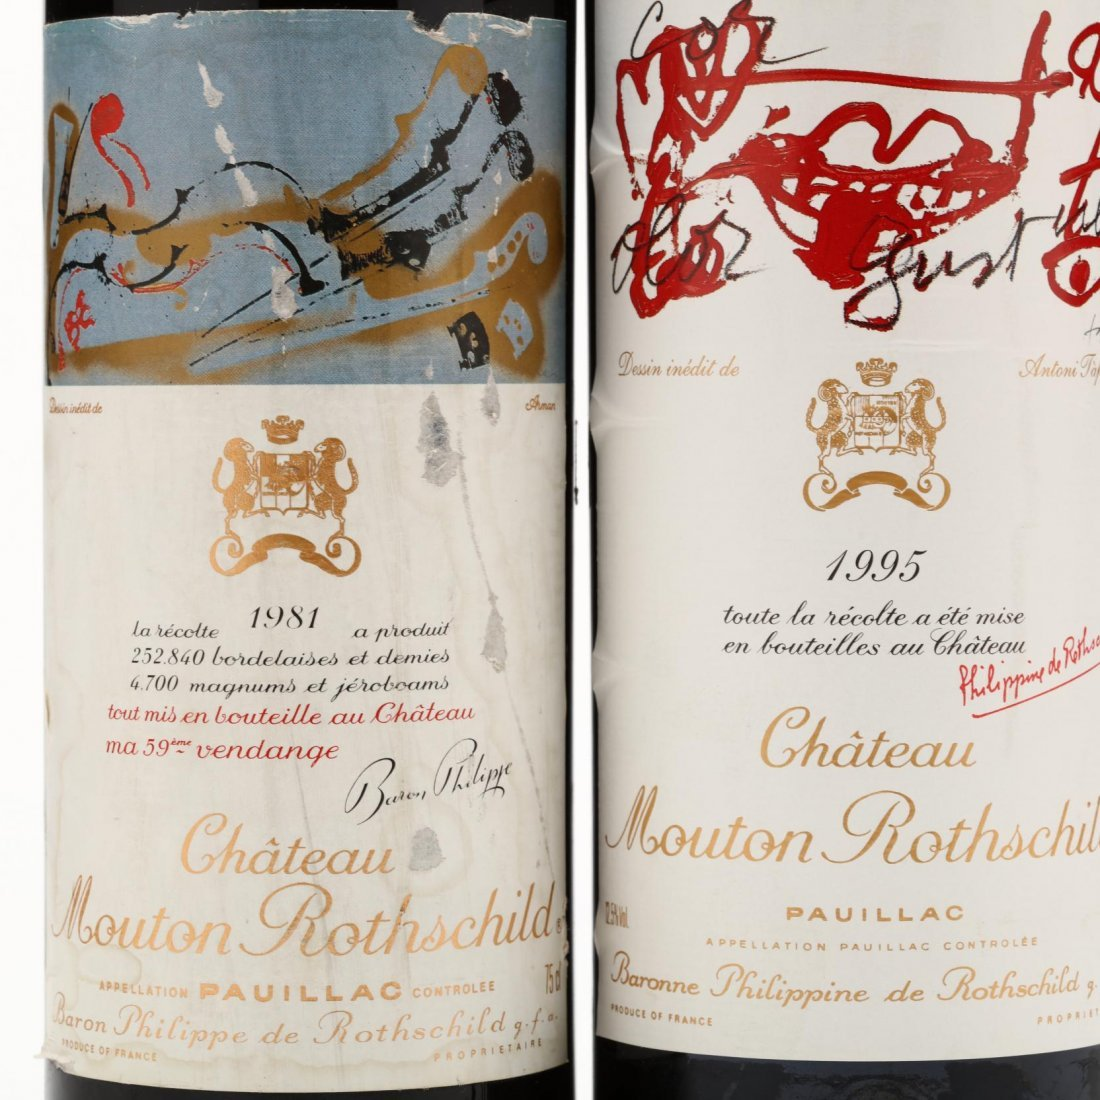 1981 & 1995 Chateau Mouton-Rothschild - 2